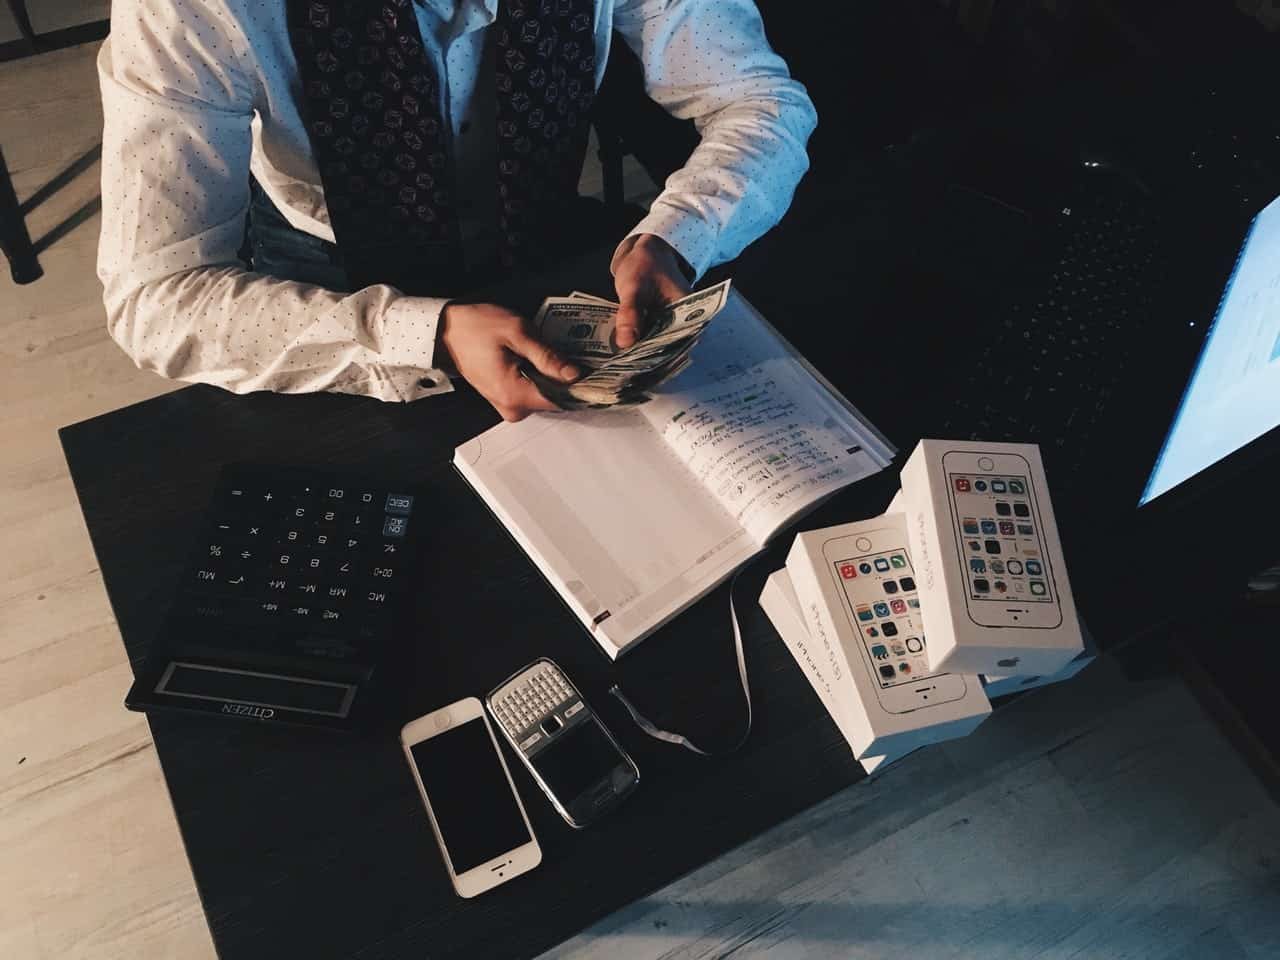 Man holding money, cellphone, calculator and laptop in the table with black background